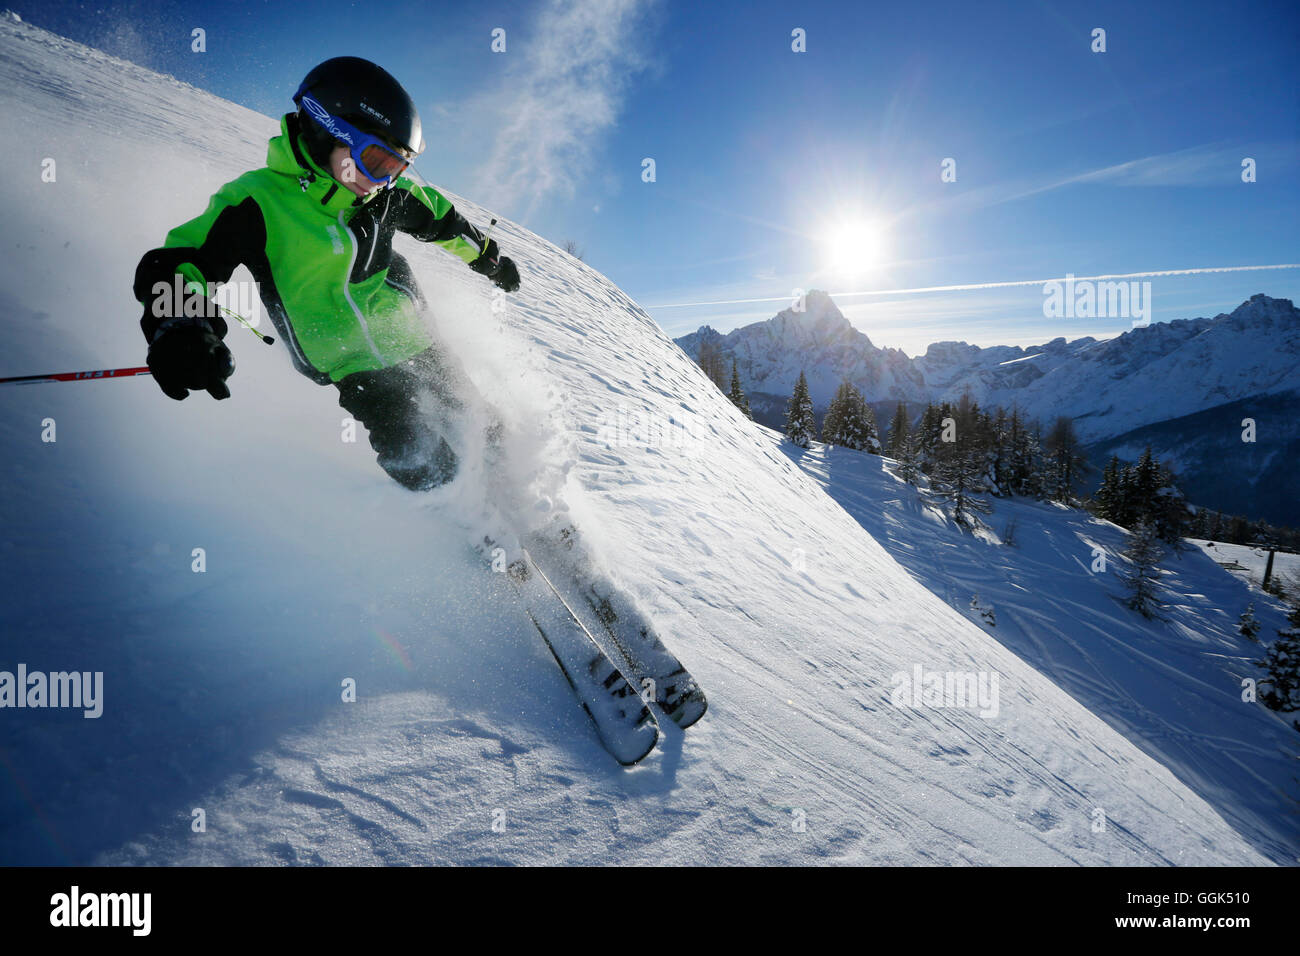 Boy downhill skiing from mount Helm (Monte Elmo), Sexten, South Tyrol, Italy - Stock Image